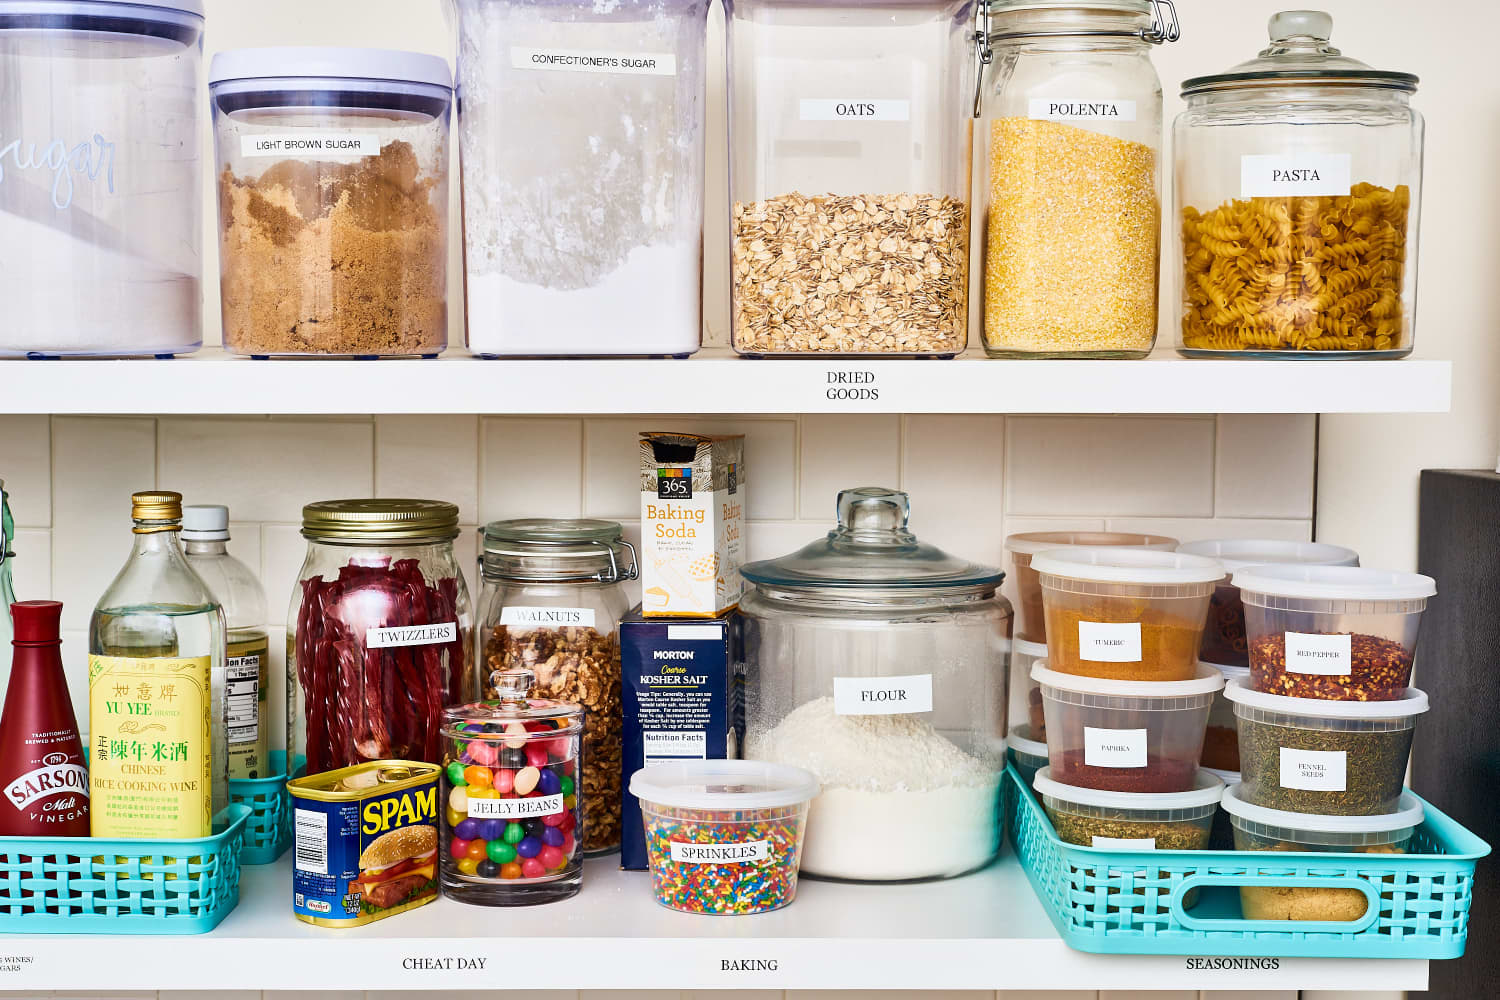 100 Simple Ways to Turn Pantry Staples into Complete Meals